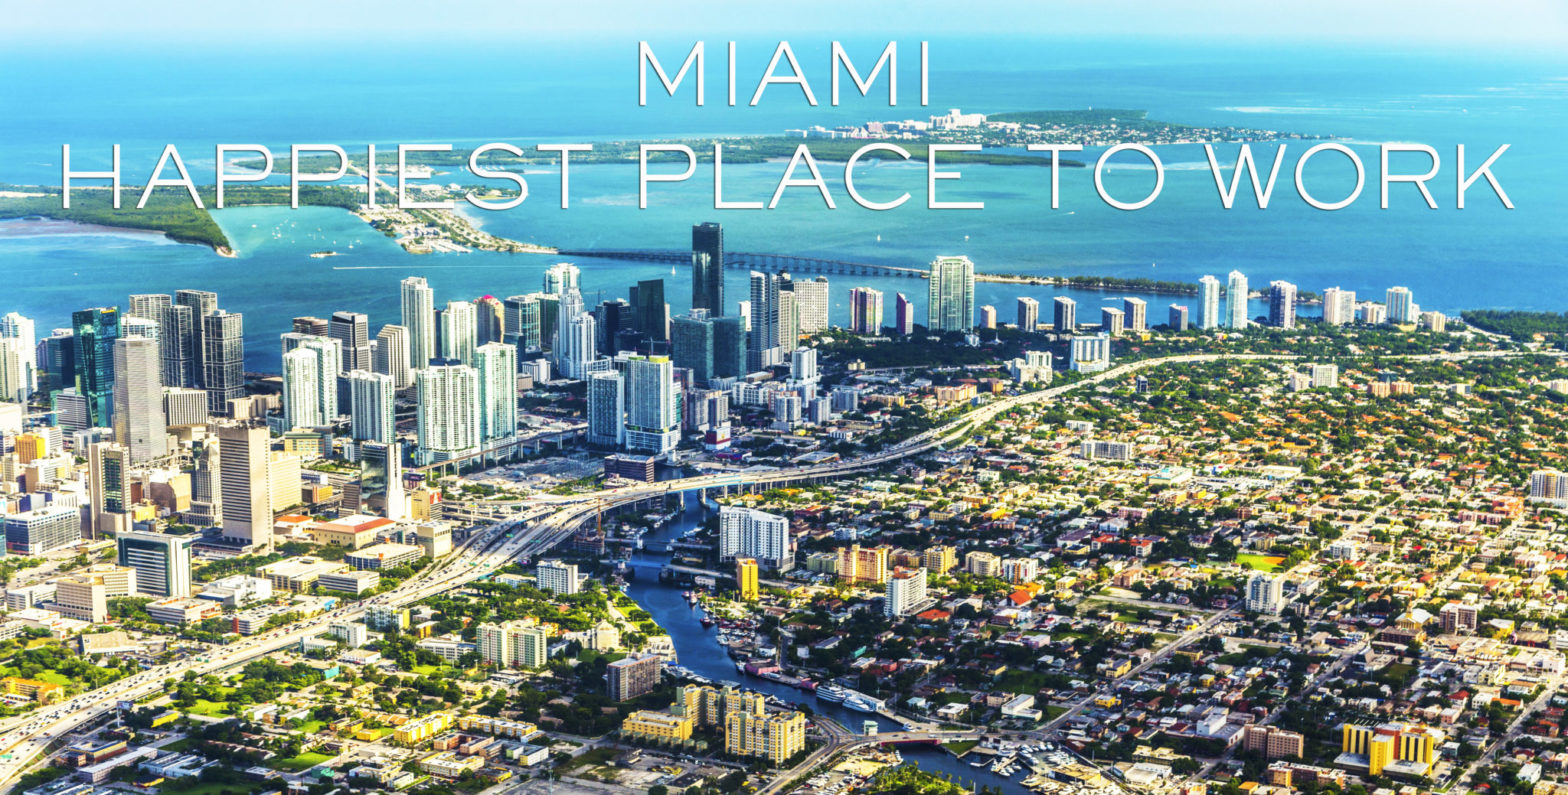 Miami, the best city or work in 2016